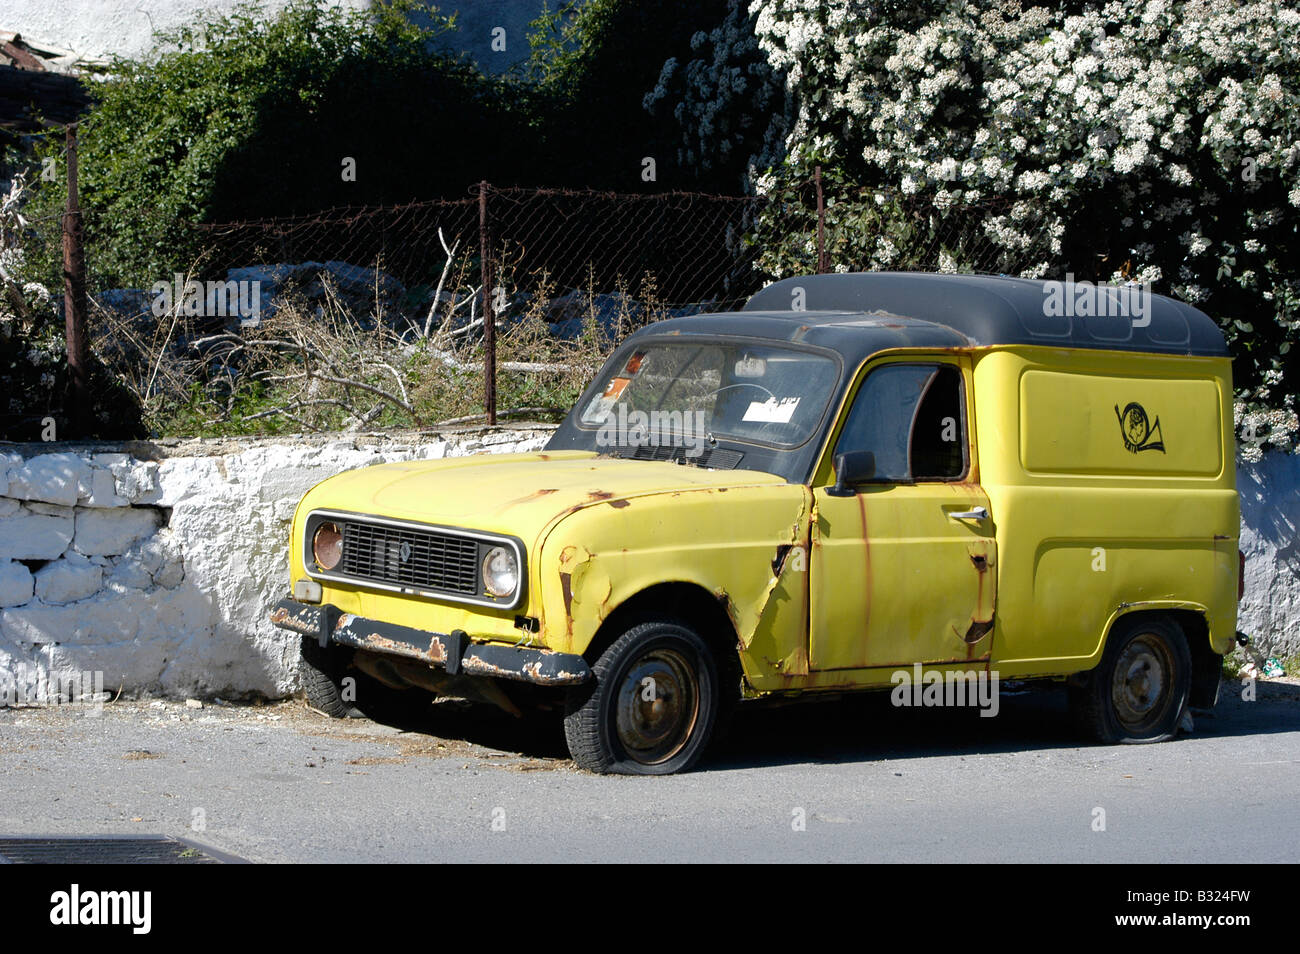 Old renault car from the greek ELTA post. - Stock Image